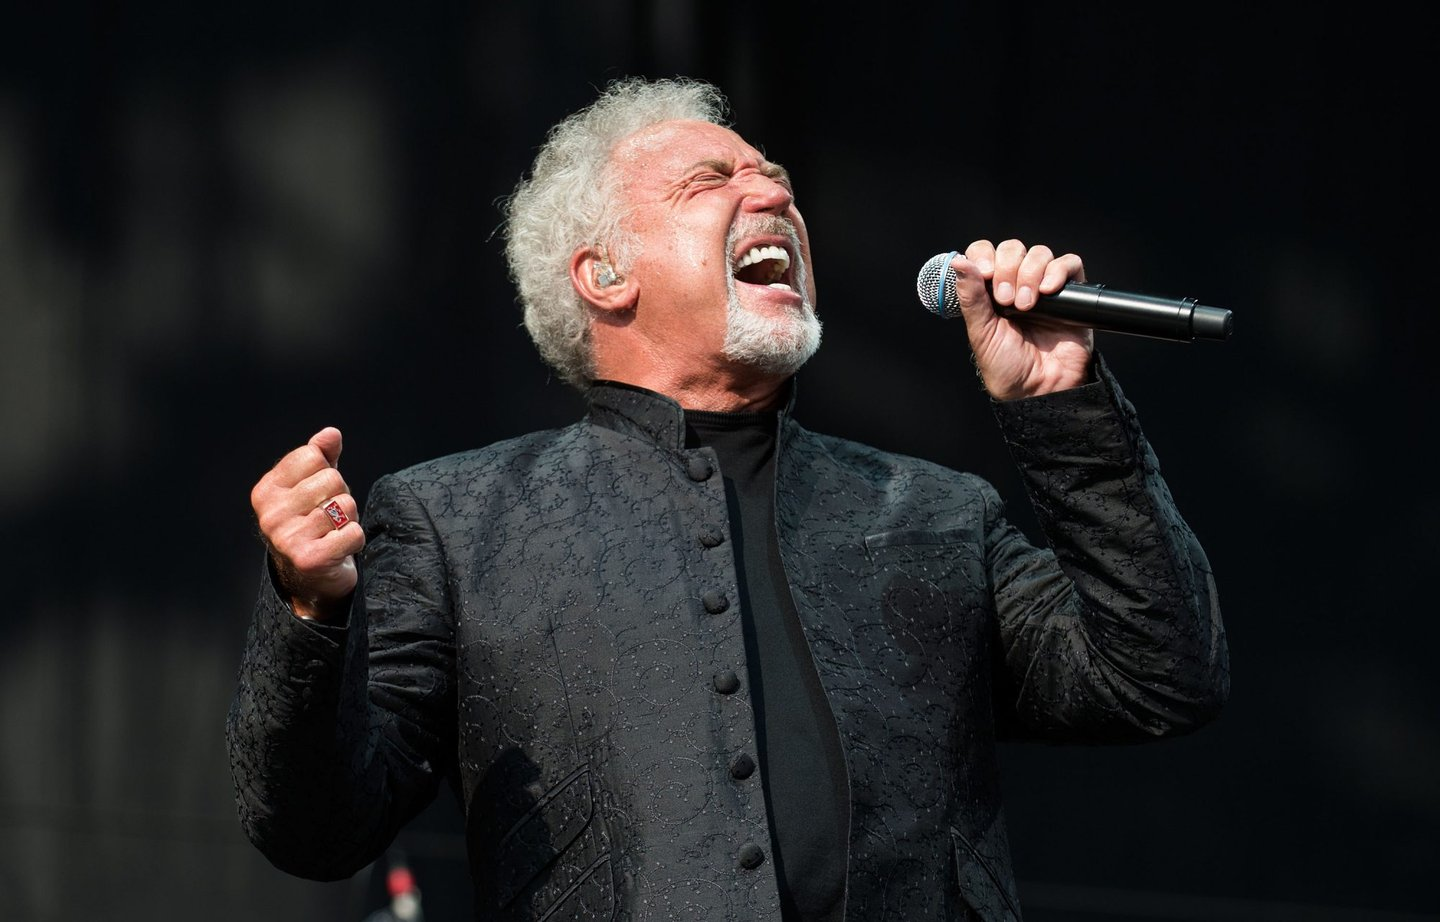 CHELMSFORD, ENGLAND - AUGUST 19: Tom Jones performs on the Virgin Media Stage on day 2 of the V Festival at Hylands Park on August 19, 2012 in Chelmsford, England. (Photo by Samir Hussein/Getty Images)